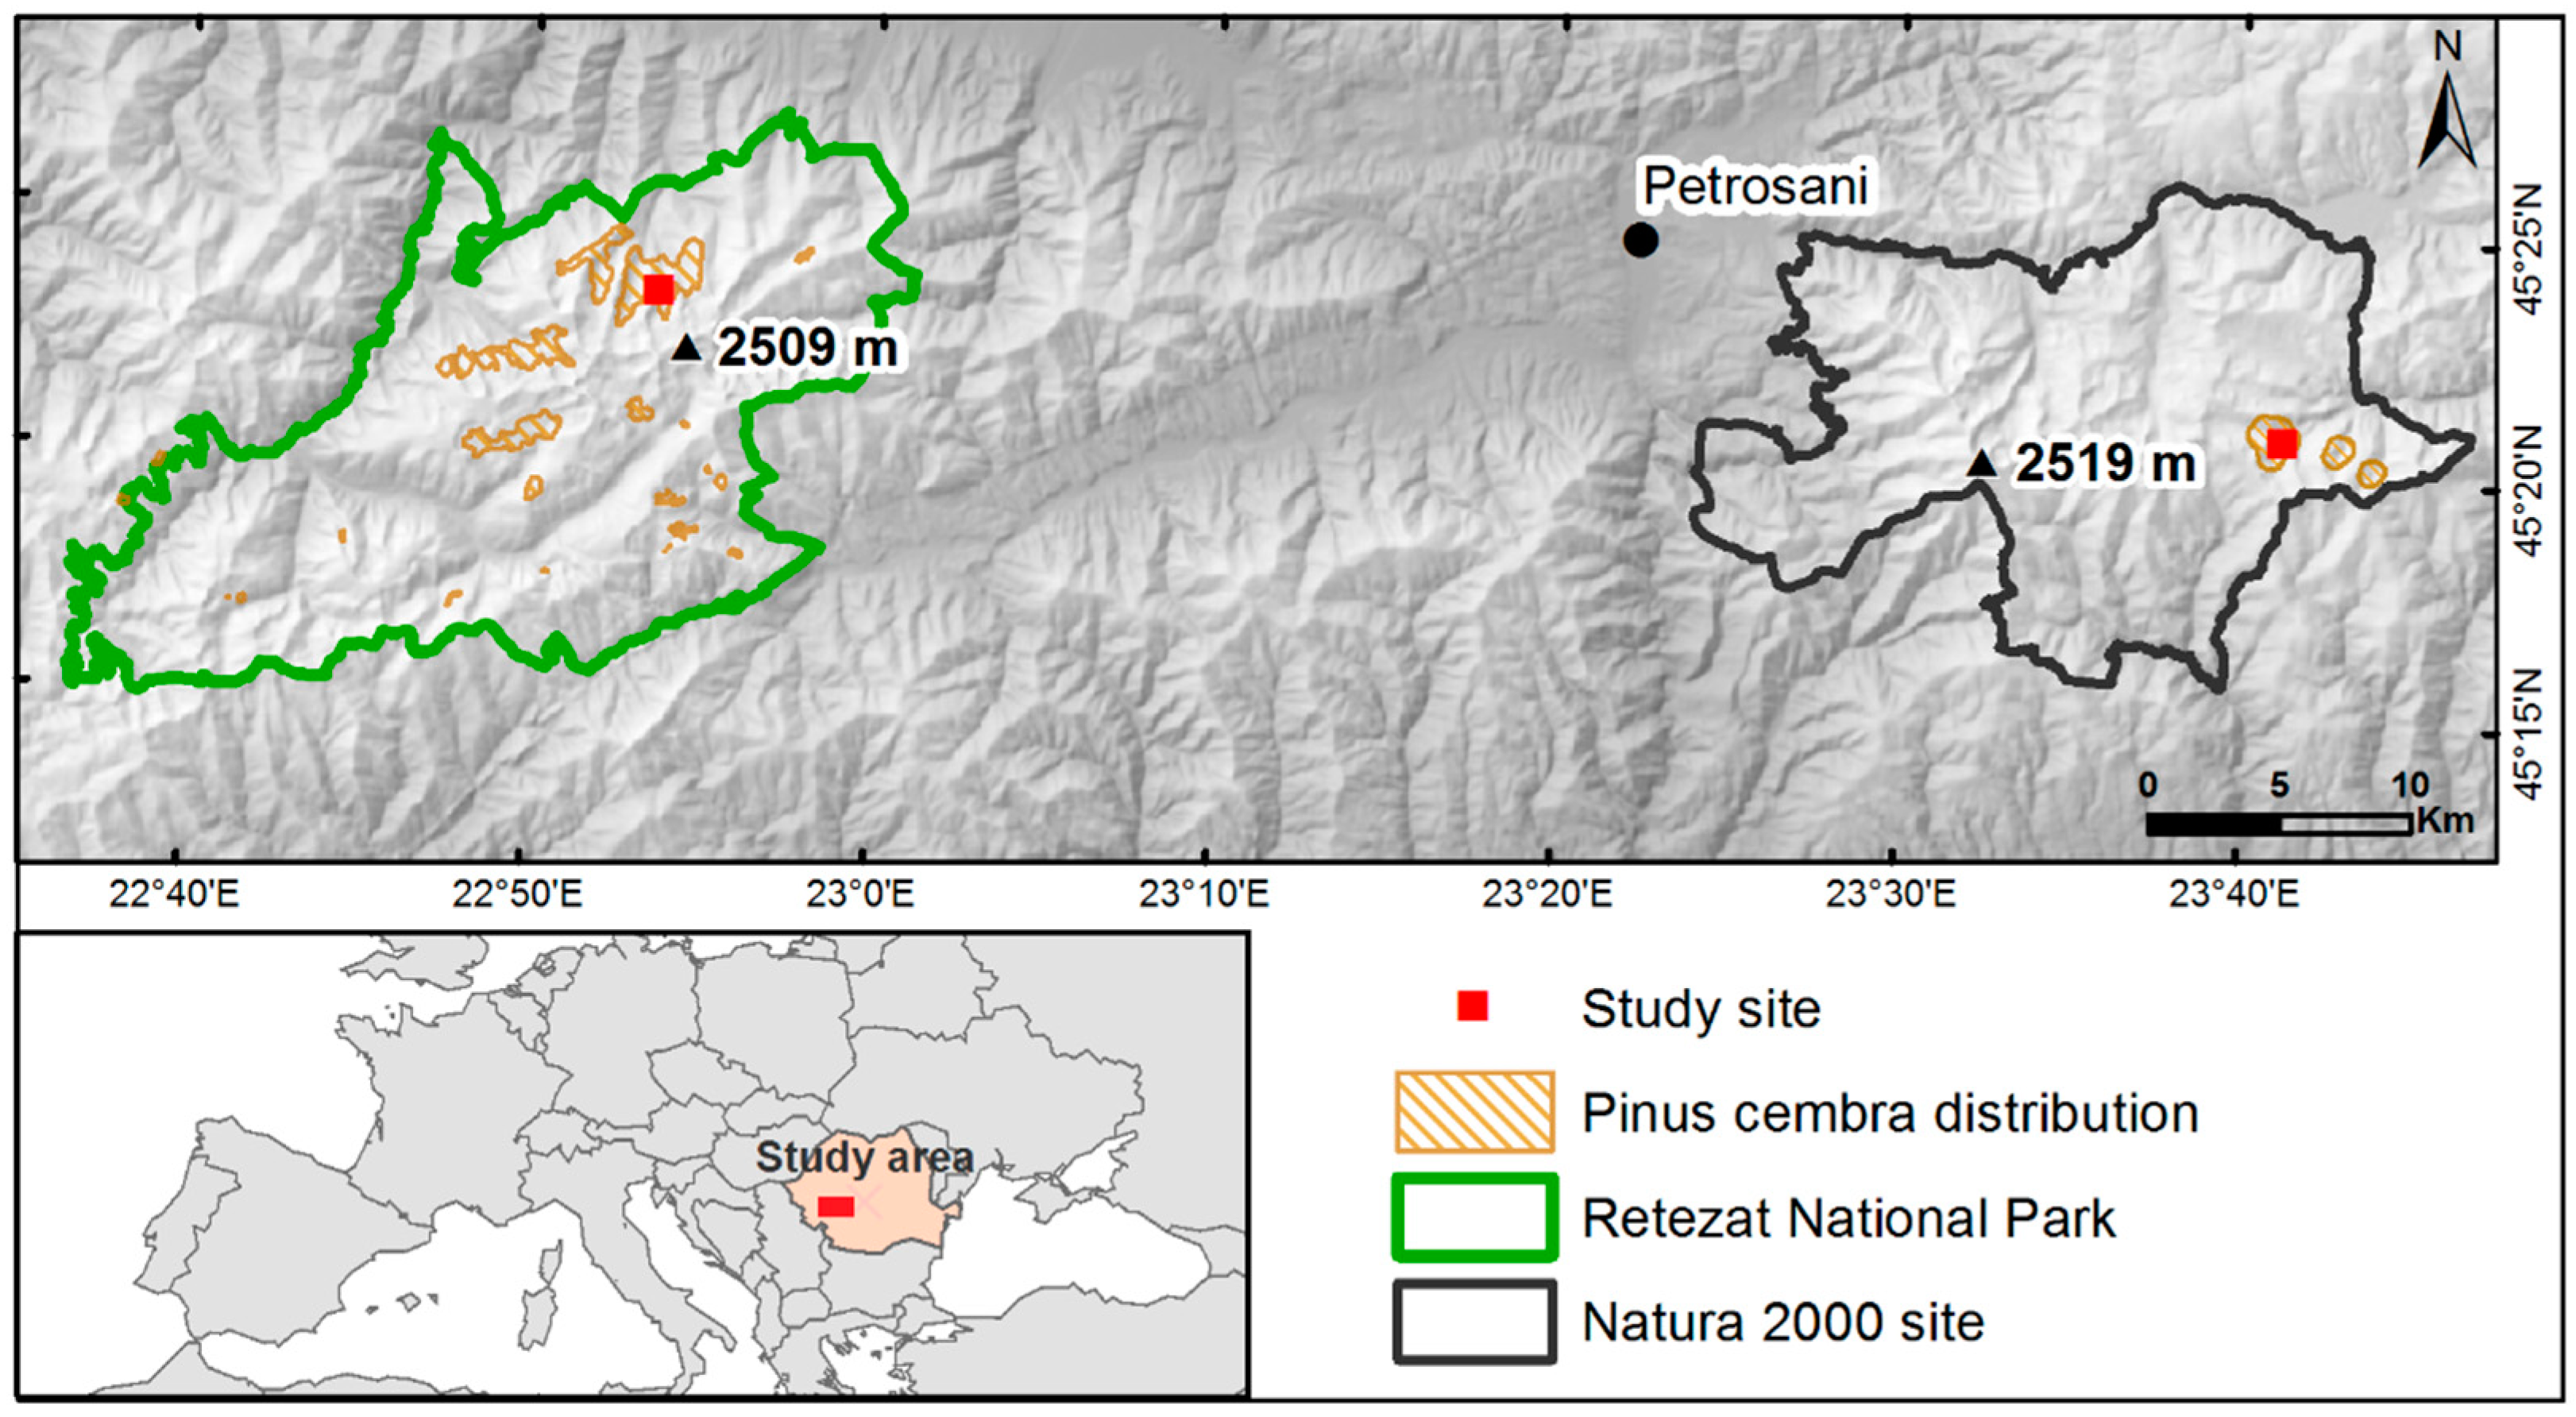 Forests | Free Full-Text | Differences in the Spatial ... on apennine mountains, scandinavian mountains map, great hungarian plain map, kjolen mountains map, balkans map, british isles map, transylvanian mountains map, cascade mountains map, transylvania map, pindus mountains map, count dracula, english channel map, karakoram mountains map, tatra mountains, dinaric mountains map, scandinavia map, danube map, europe map, scandinavian mountains, alps map, iberian peninsula map, apennines map, caucasus mountains, baltic sea, balkan mountains, zagros mountains map, scandinavian peninsula map, bran castle, atlas mountains, black sea, vlad iii the impaler,